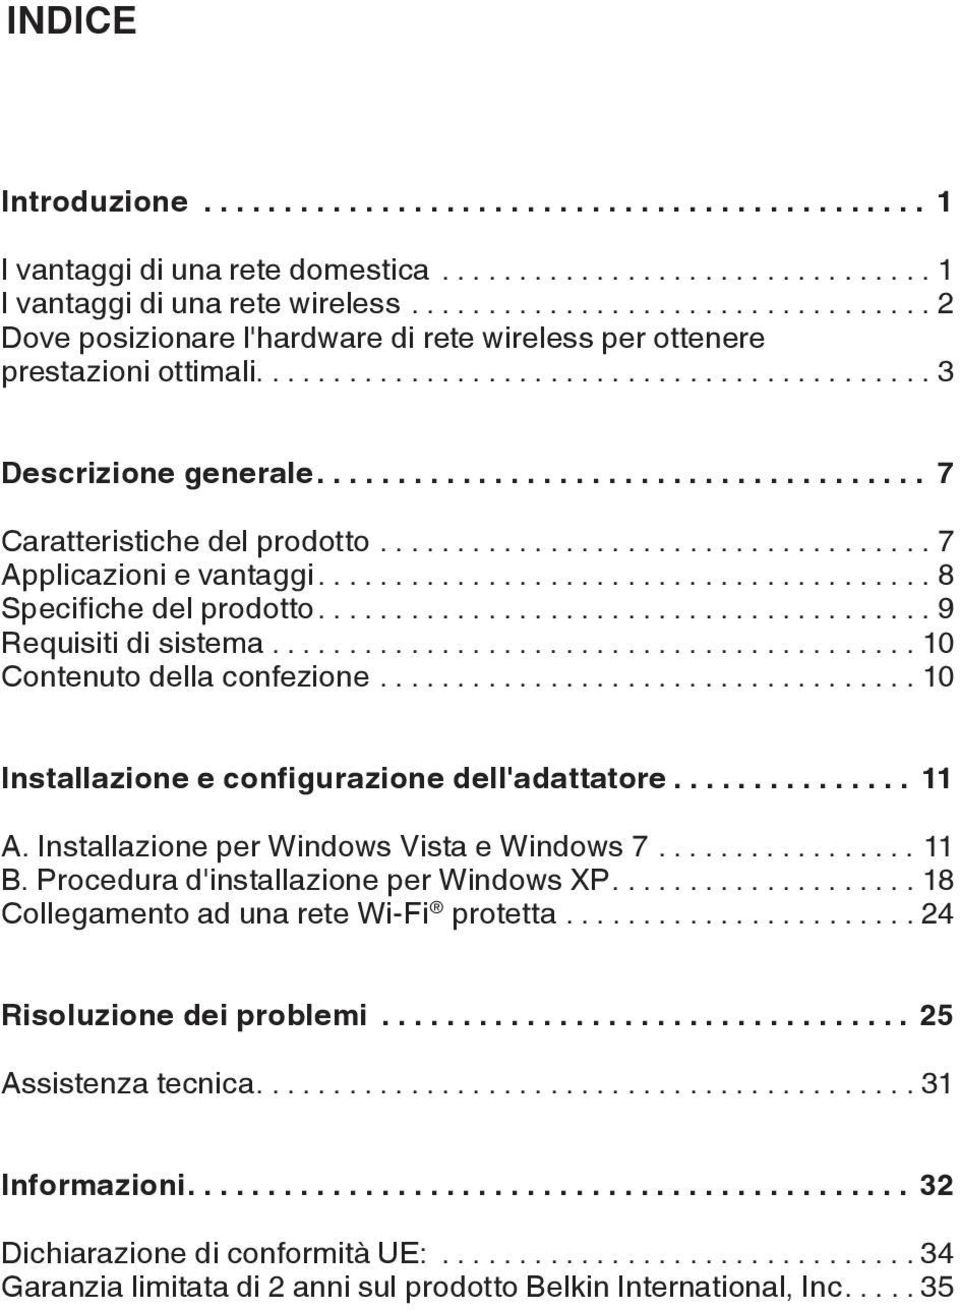 ..10 Installazione e configurazione dell'adattatore... 11 A. Installazione per Windows Vista e Windows 7... 11 B. Procedura d'installazione per Windows XP.